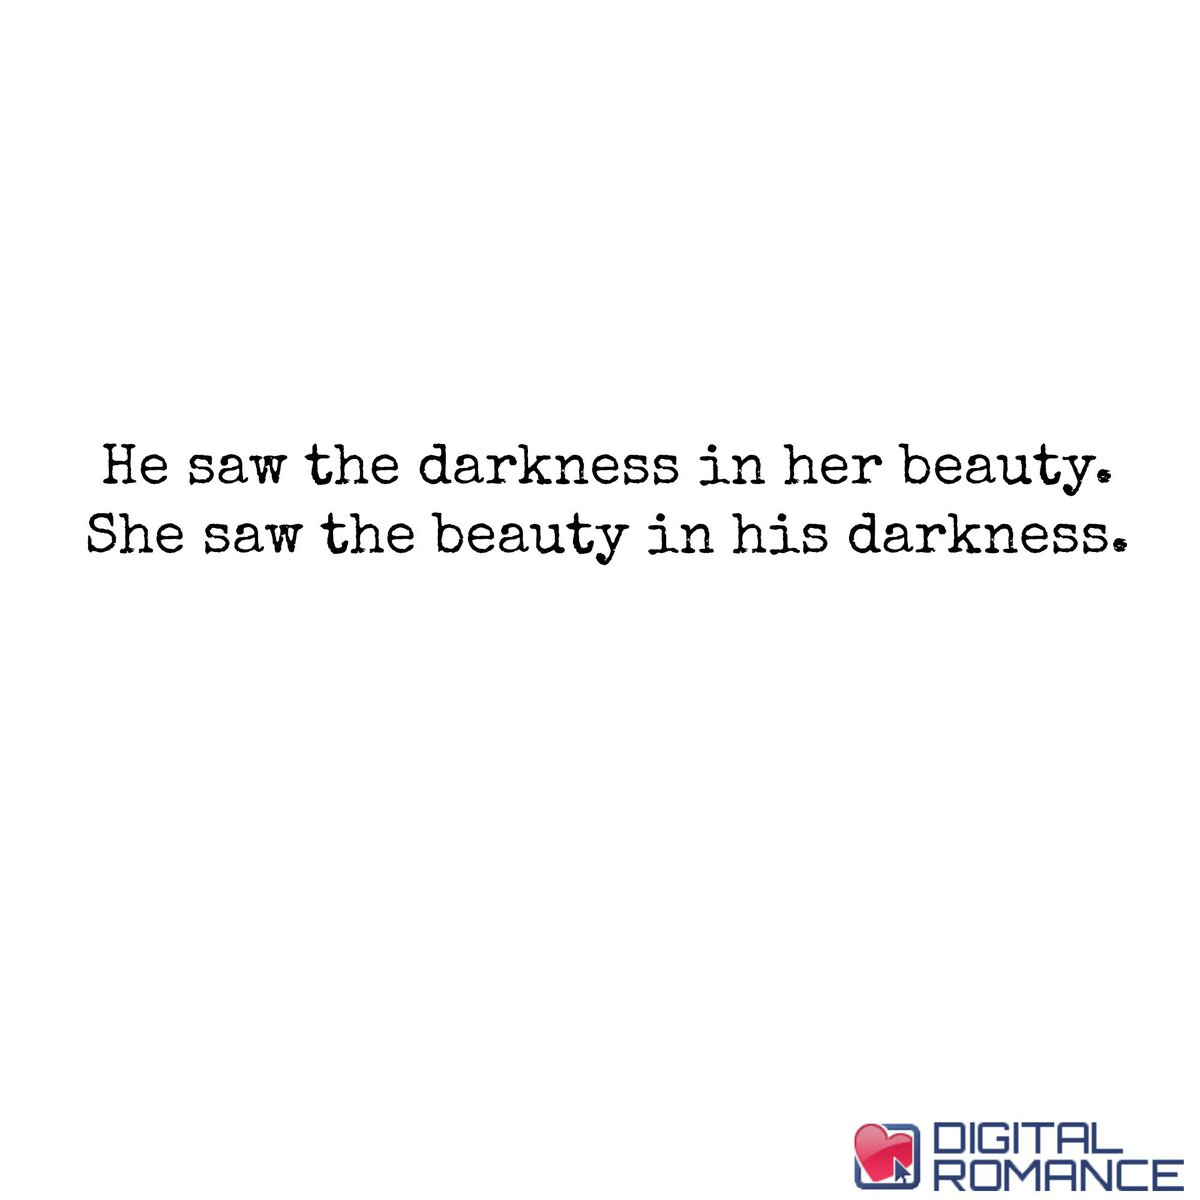 Digital Romance Inc On Twitter He Saw The Darkness In Her Beauty